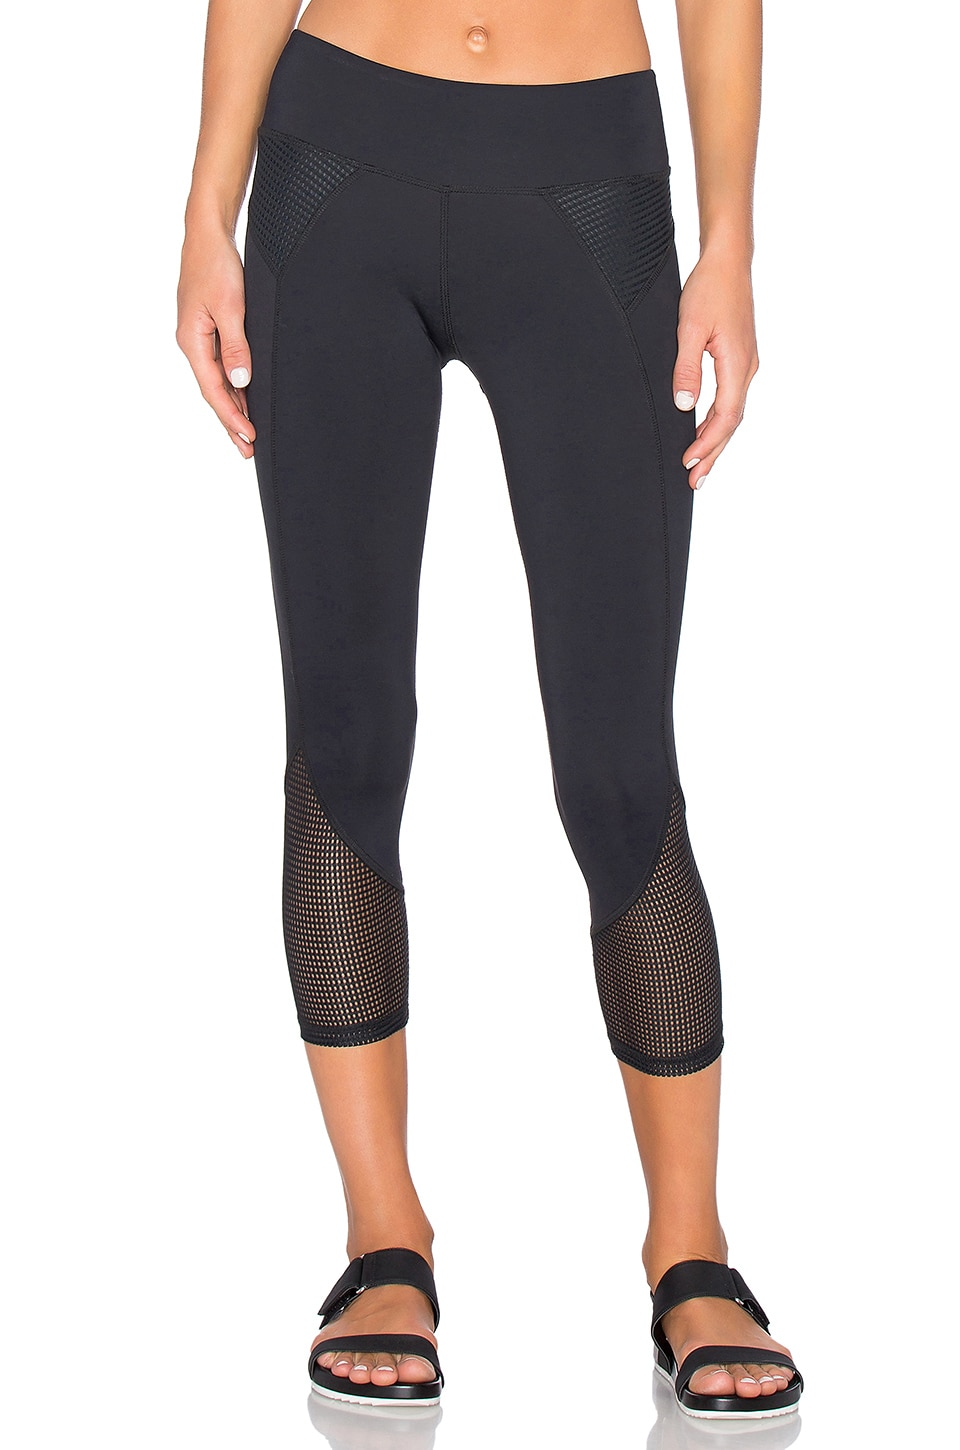 Demi Mesh Panel Legging by CHICHI